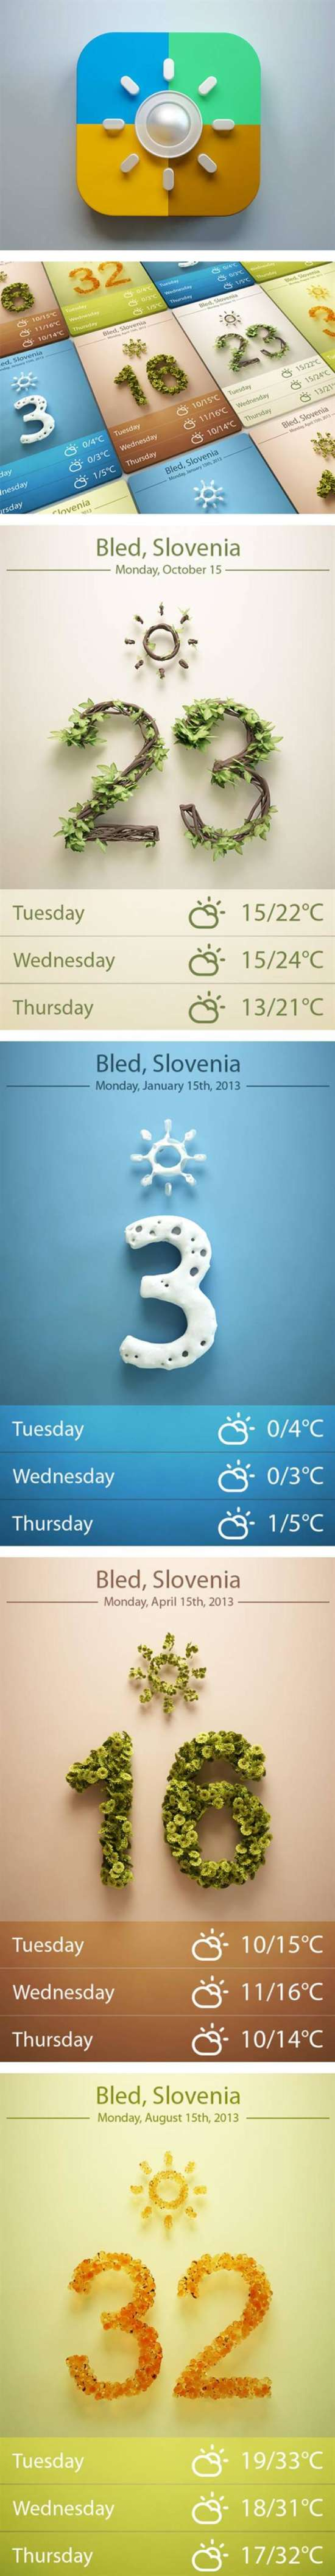 just_another_weather_app_screenshot